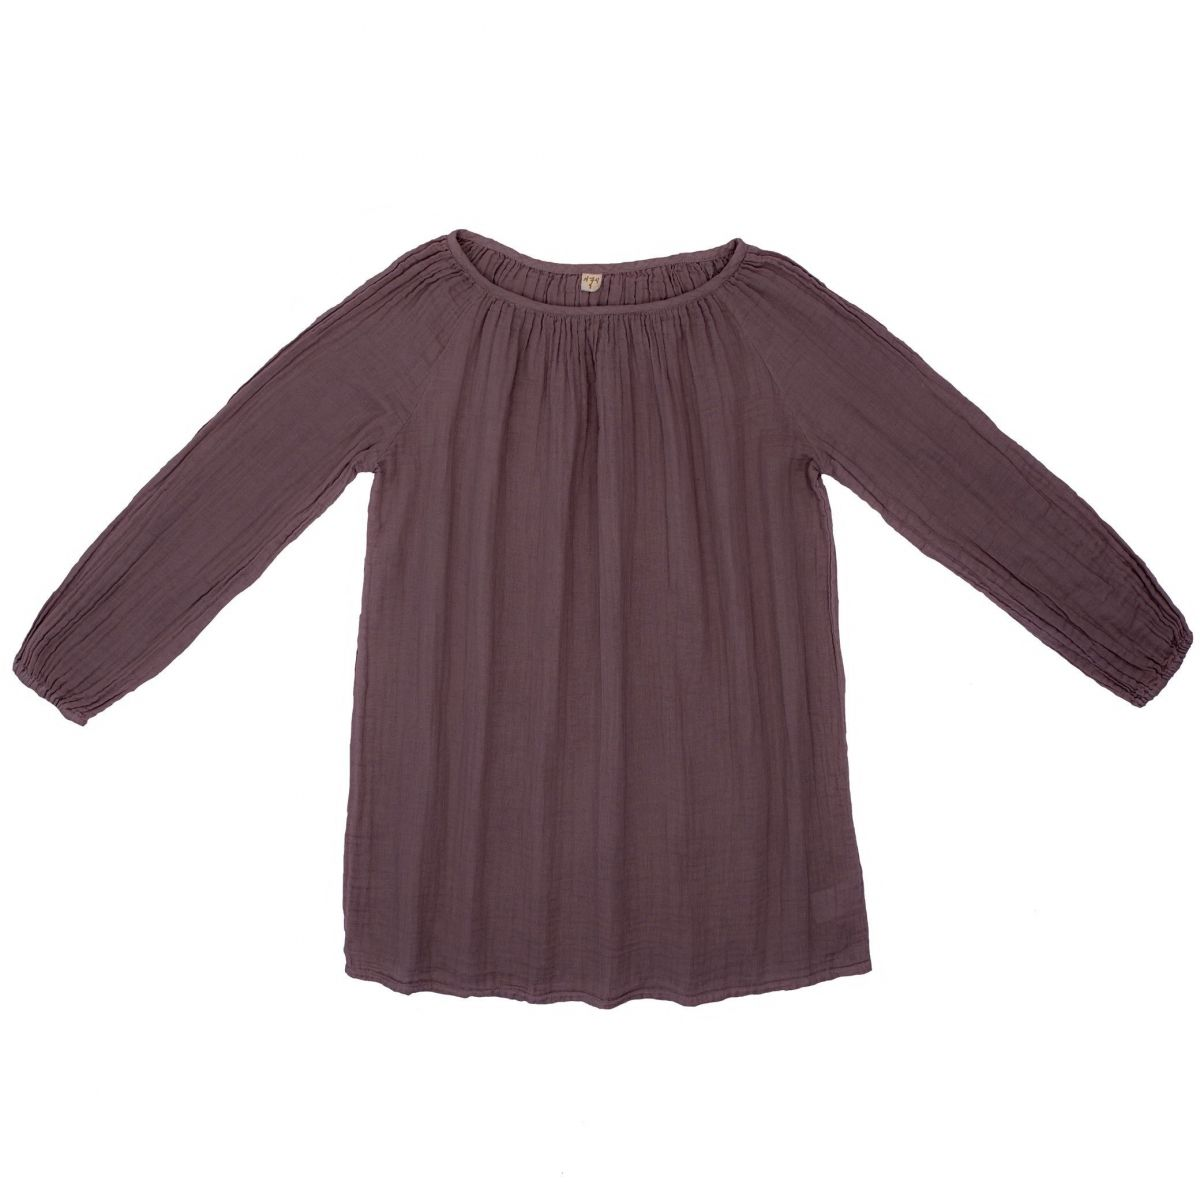 Numero 74 - Tunic for mum Nina dusty lilac - 1